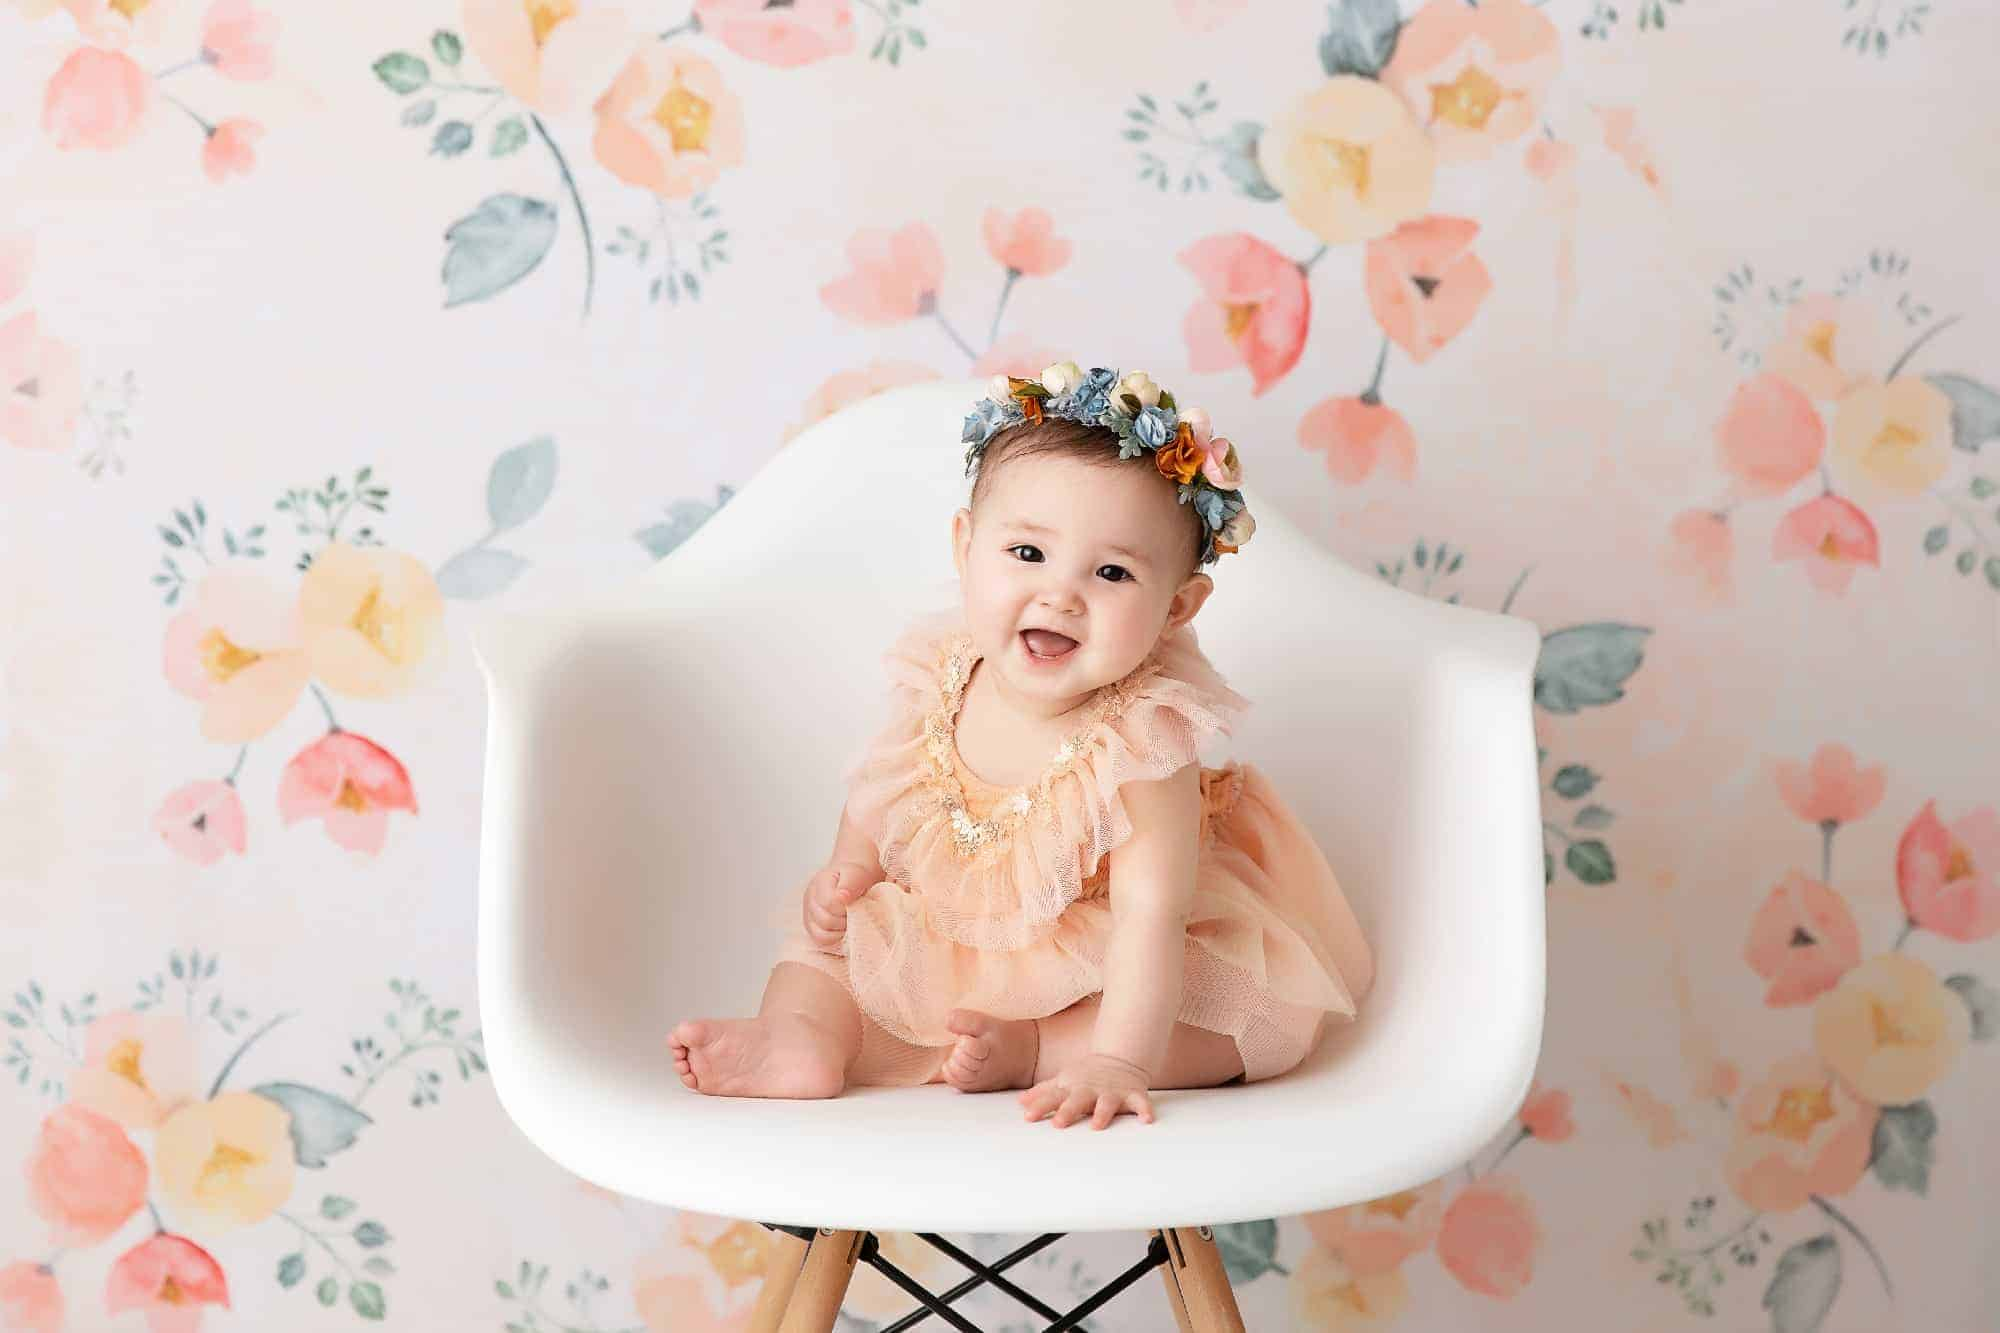 Months and allow me to capture this sweet time for you as it goes by way too fast enough of me scroll down and look at just how cute baby audrey is